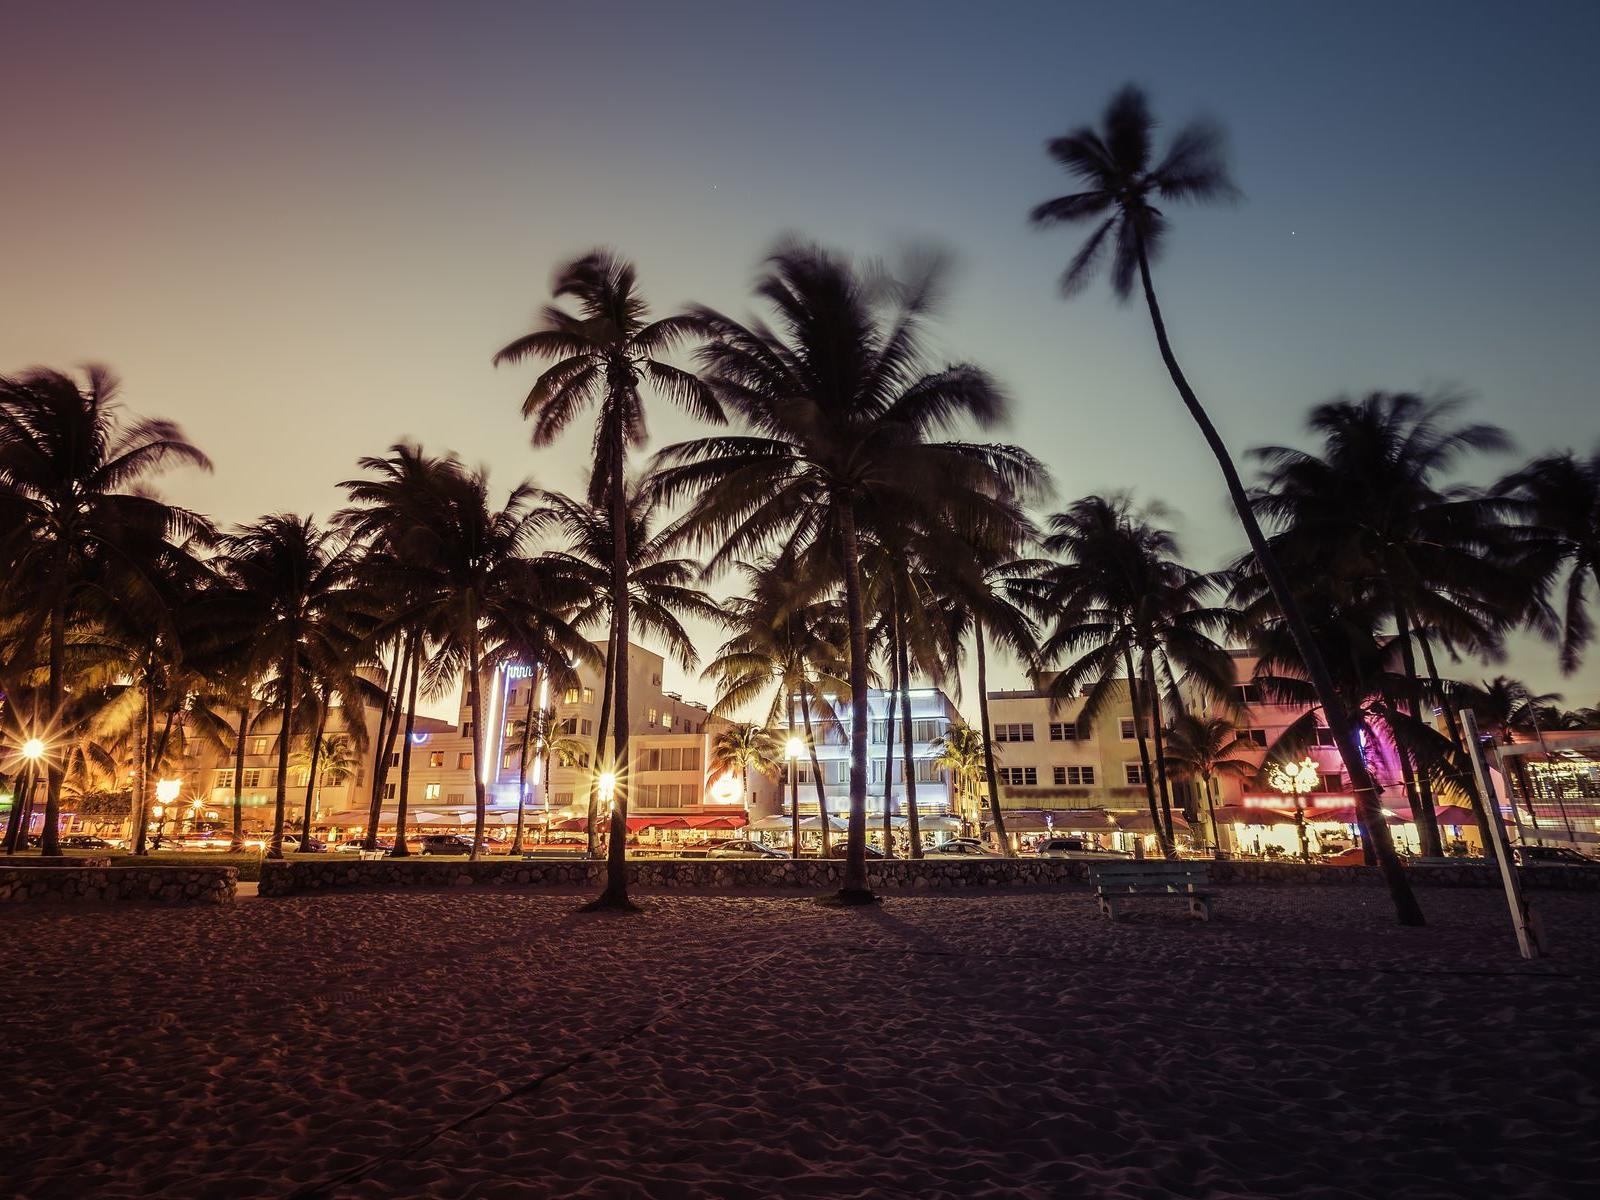 palm trees on south beach at sunrise